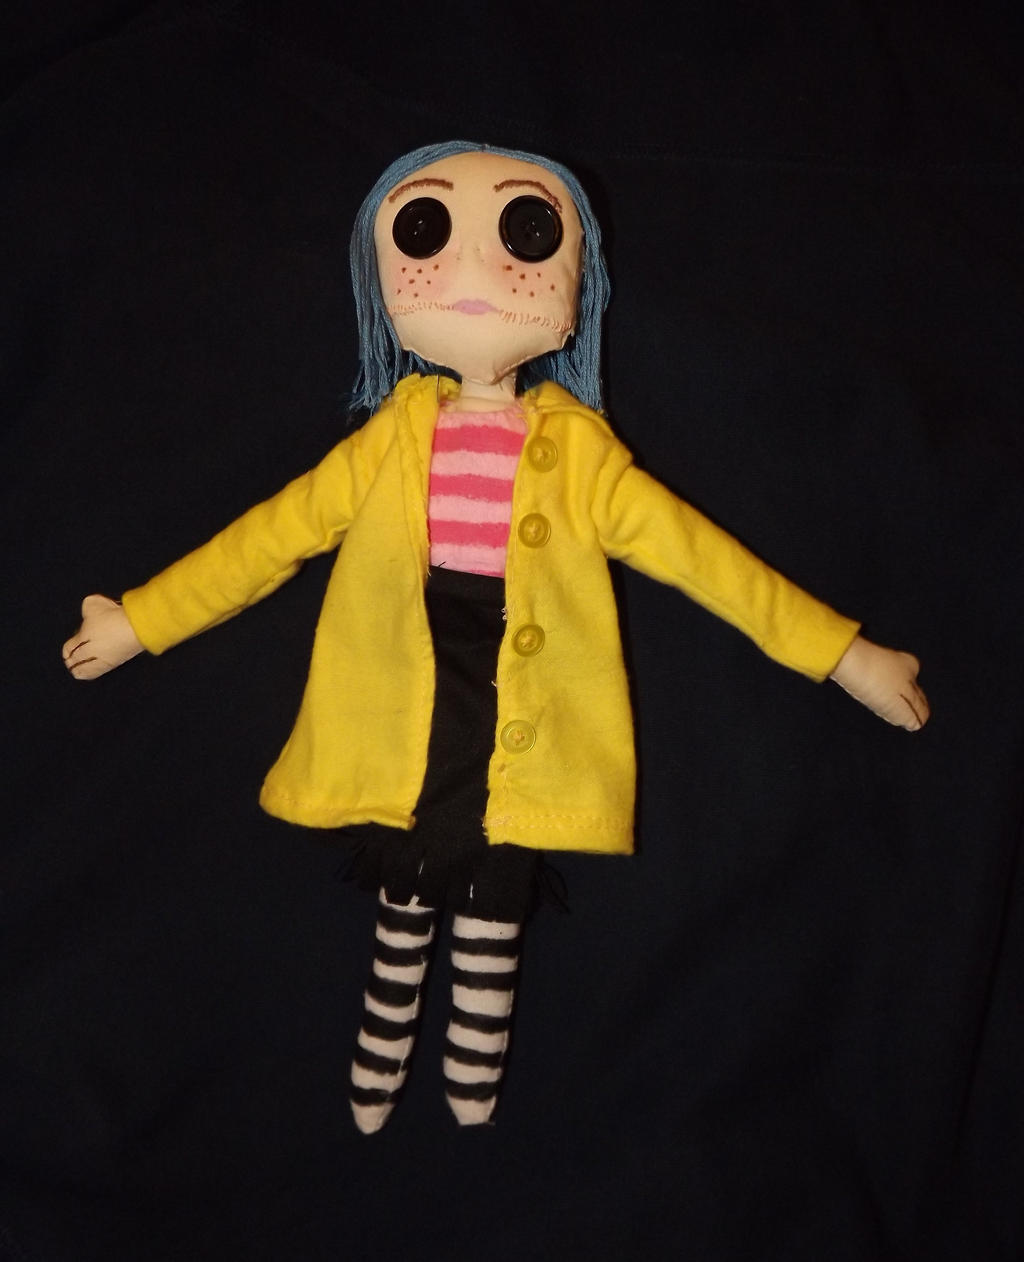 Coraline Doll By Paranoiapenguin On Deviantart